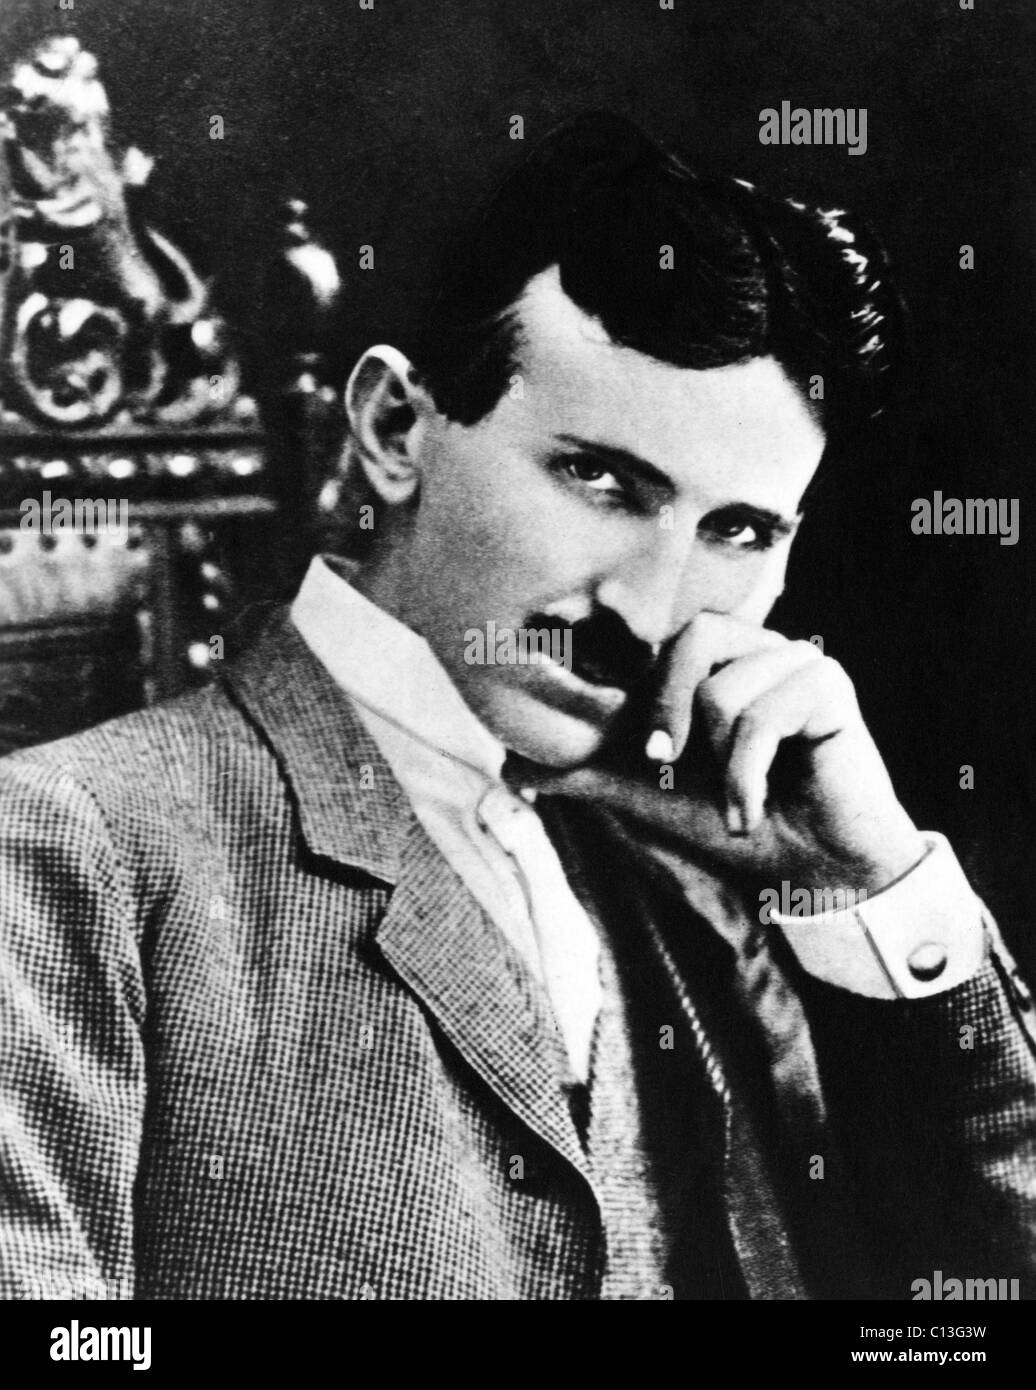 Nikola Tesla, physicist, engineer and inventor of alternating current power, 1890s - Stock Image